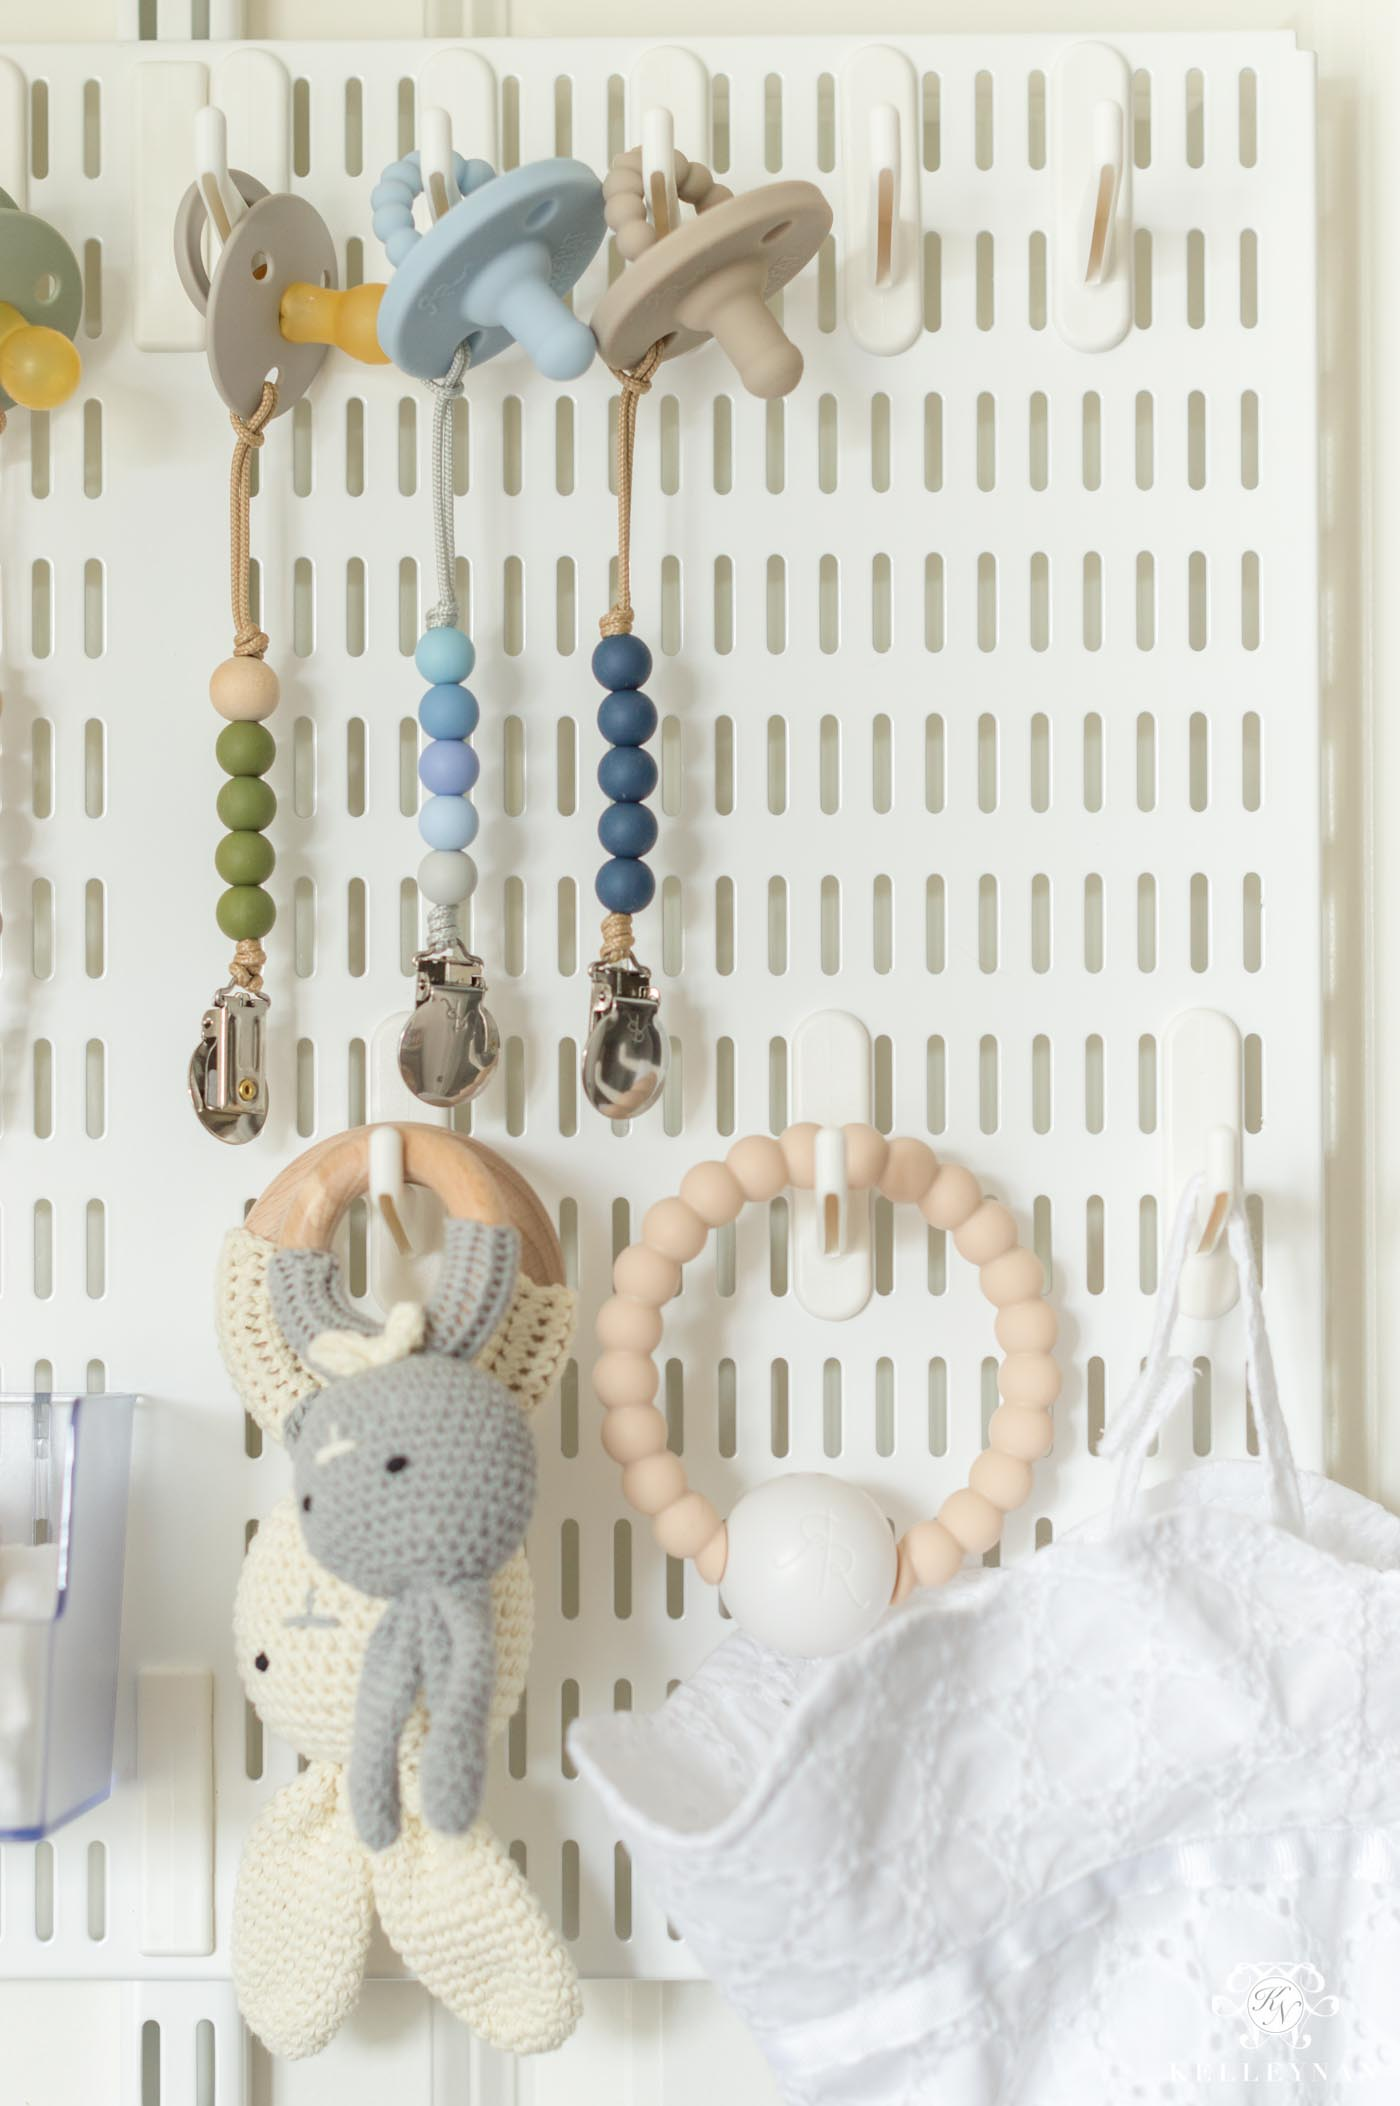 Pacifier organization and display